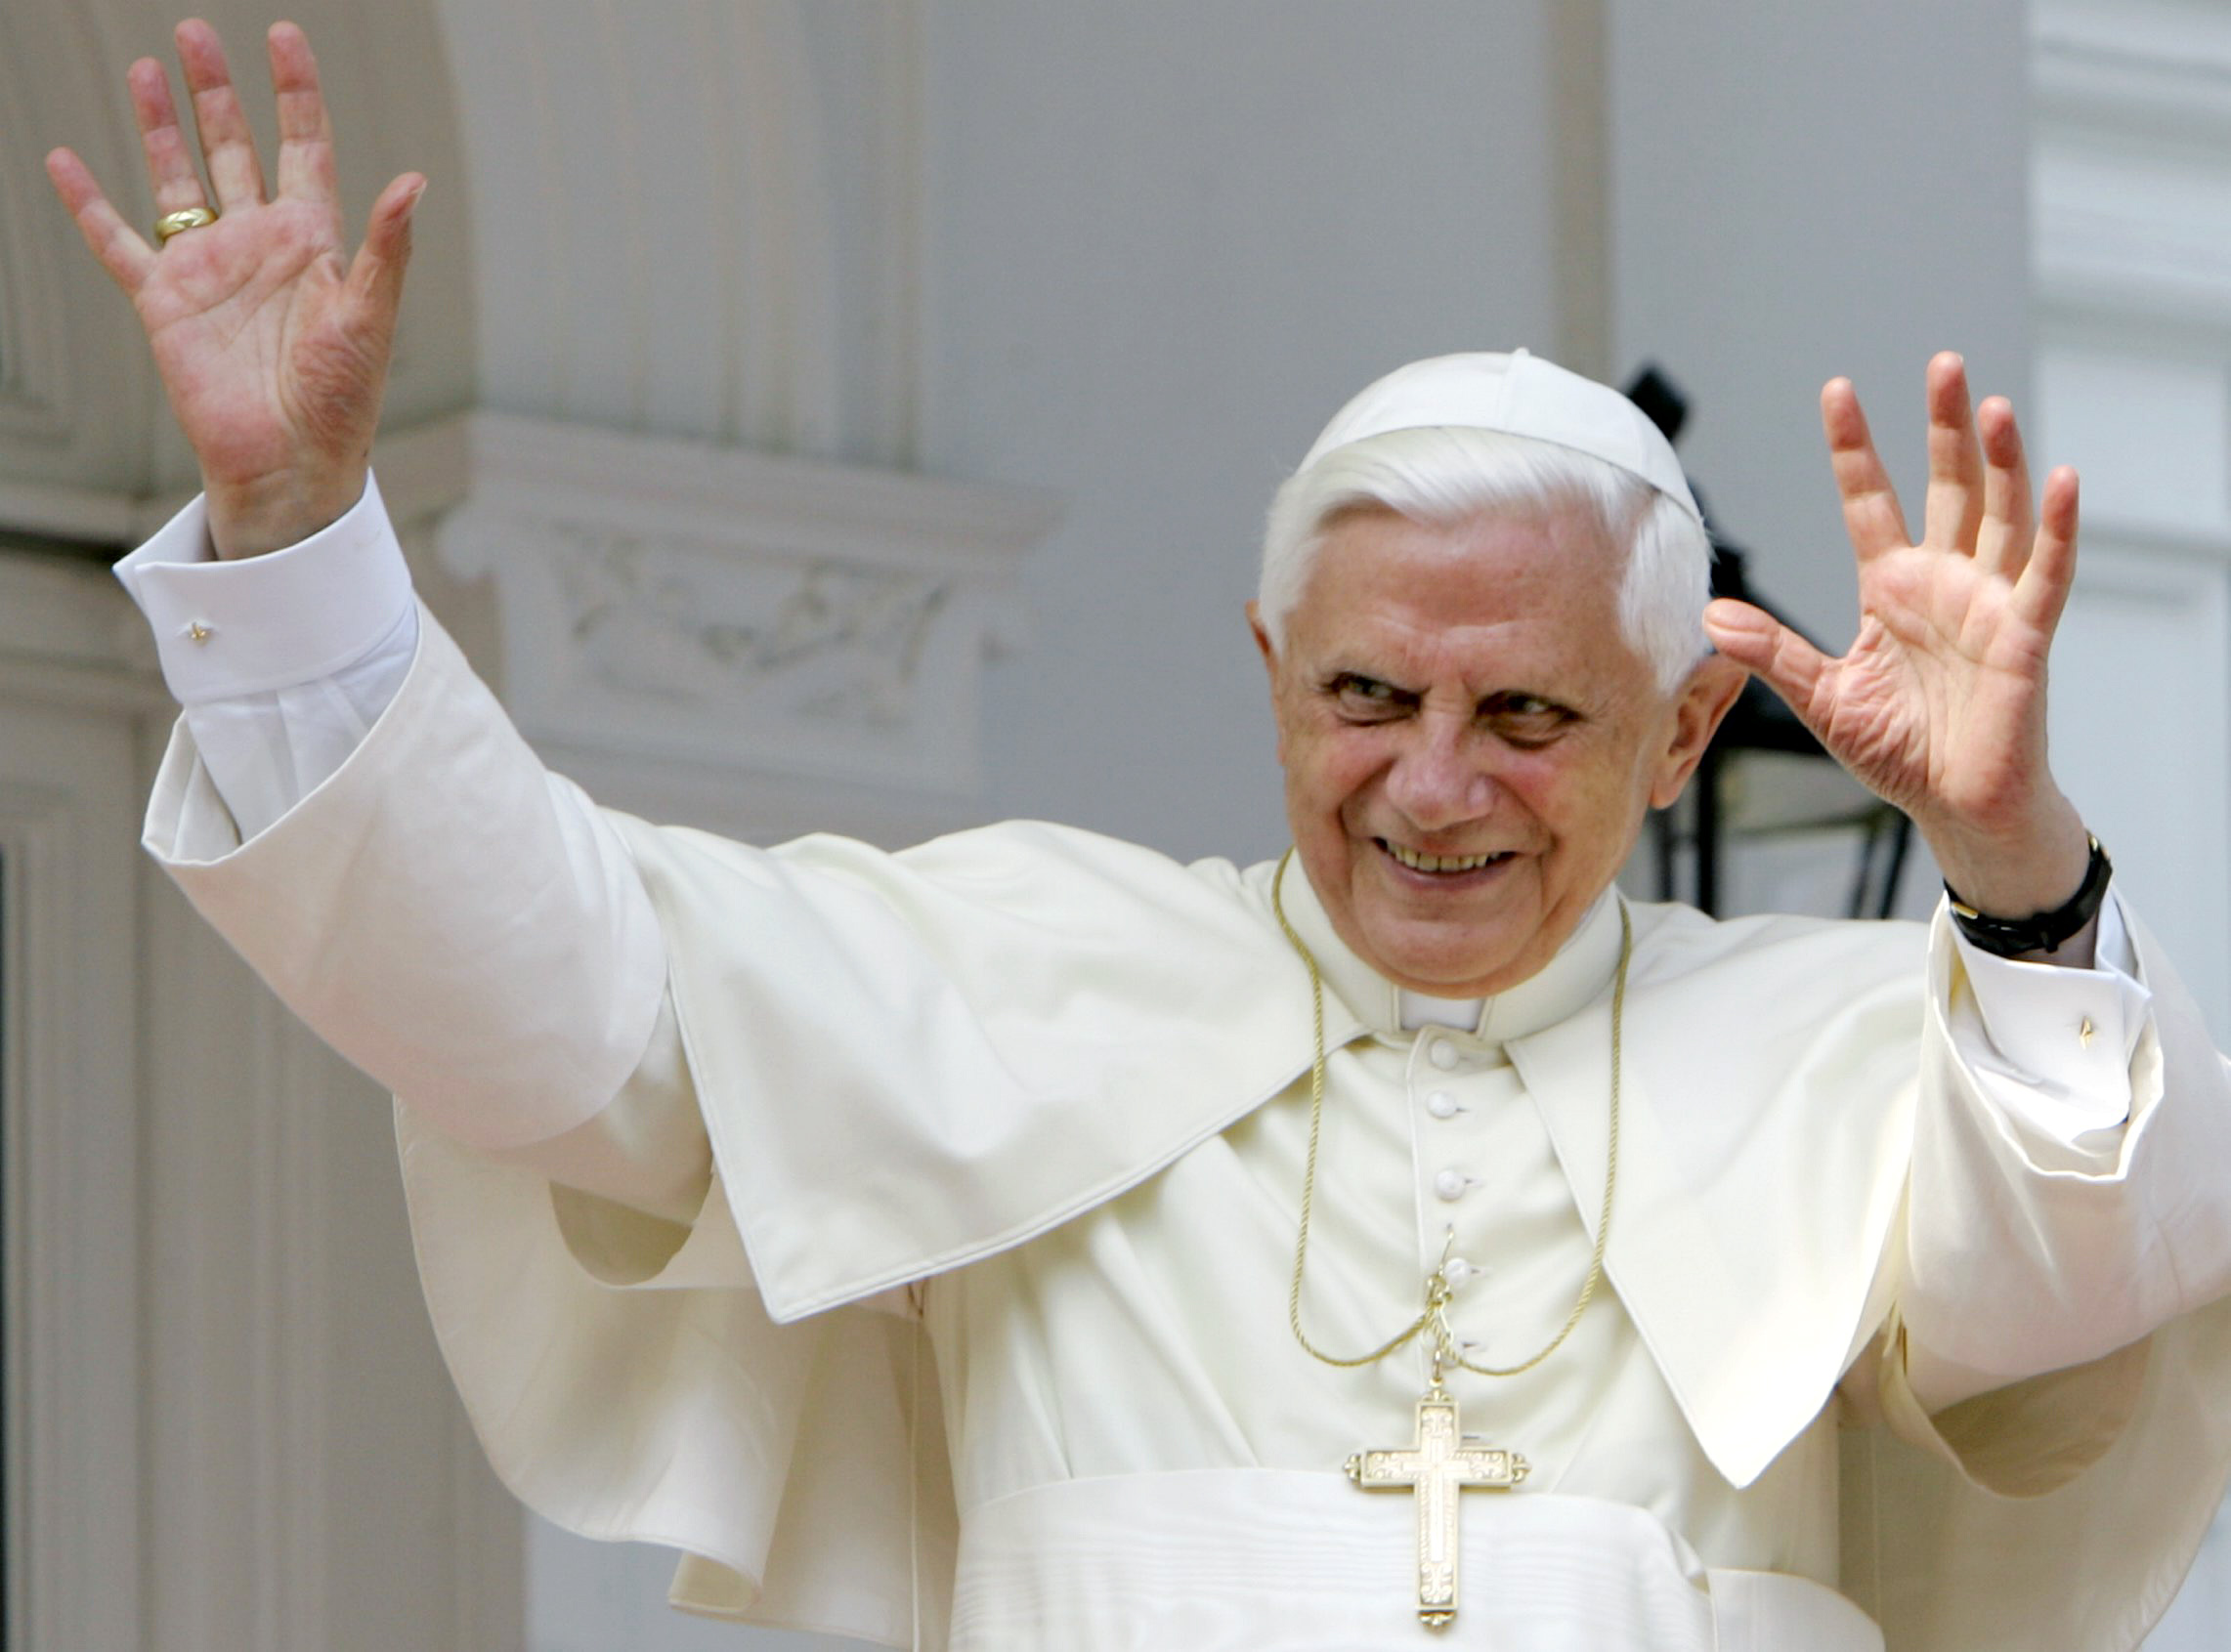 benedict xvi Pope benedict xvi is the 265th pope he was elected on april 19, 2005 at the age of 78 - the oldest to have done so since pope clement xii 1730 he stood down on.